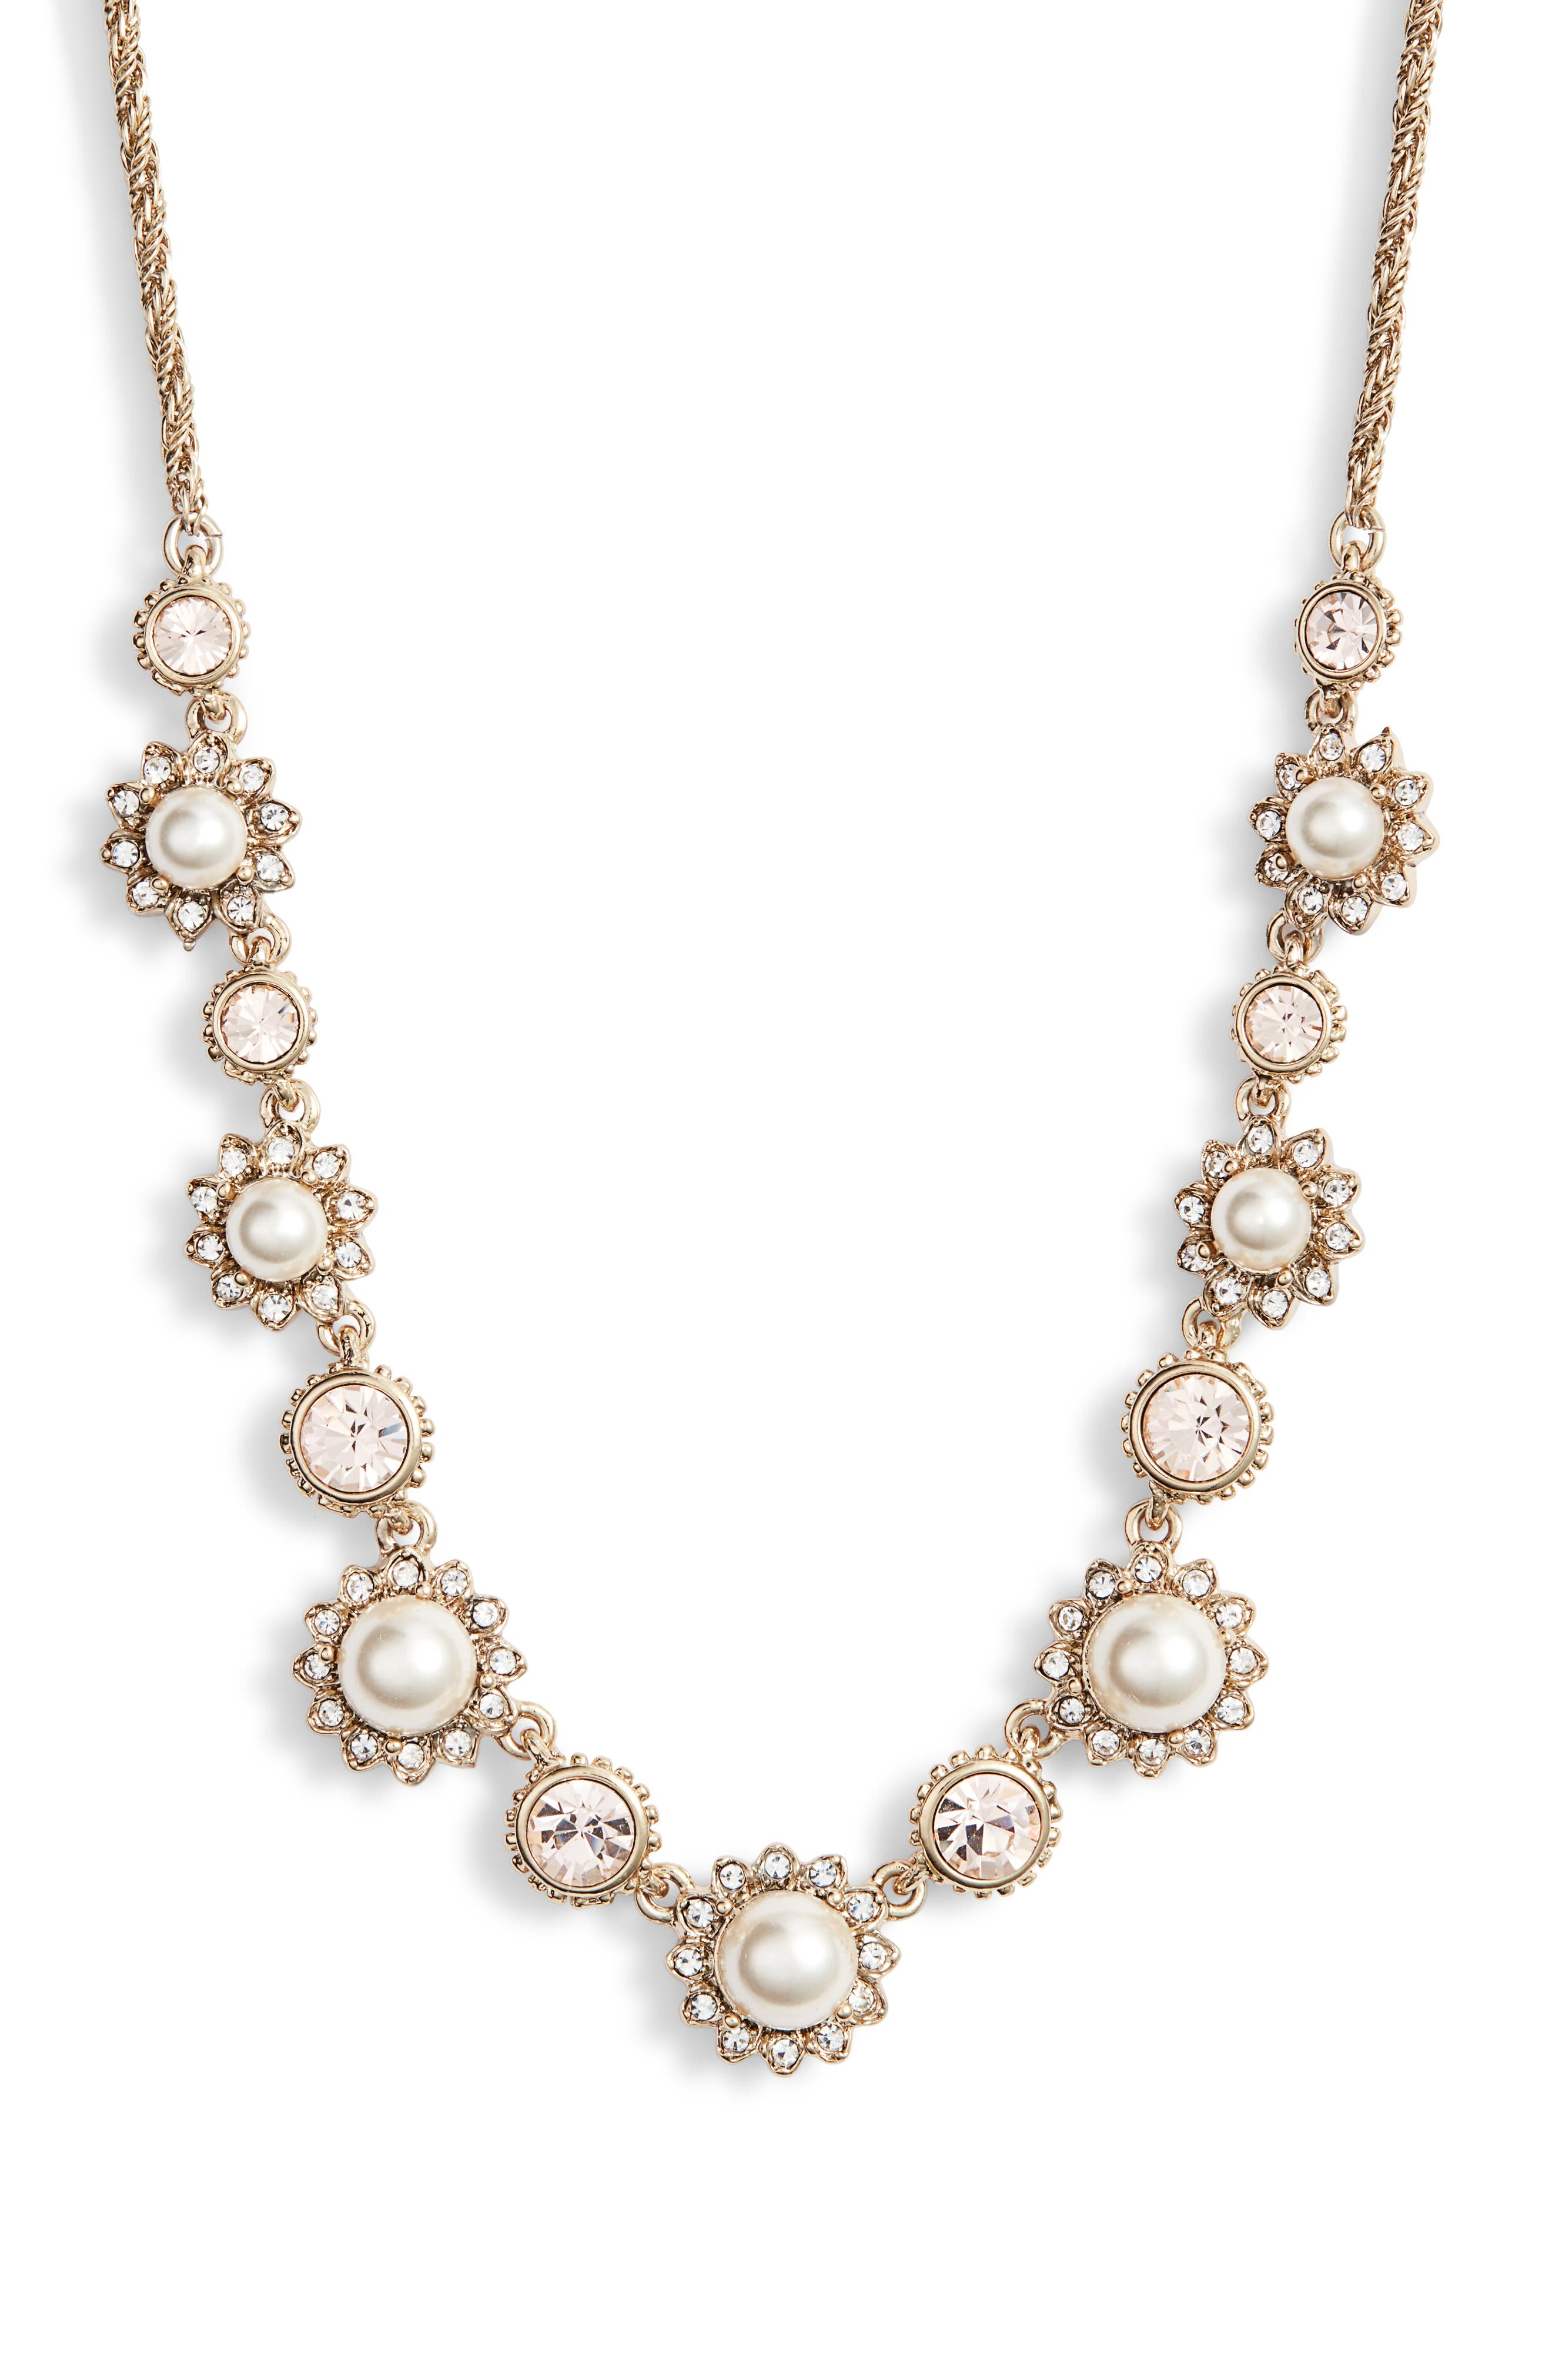 MARCHESA, Frontal Necklace, Main thumbnail 1, color, CREAM/ SILK/ GOLD